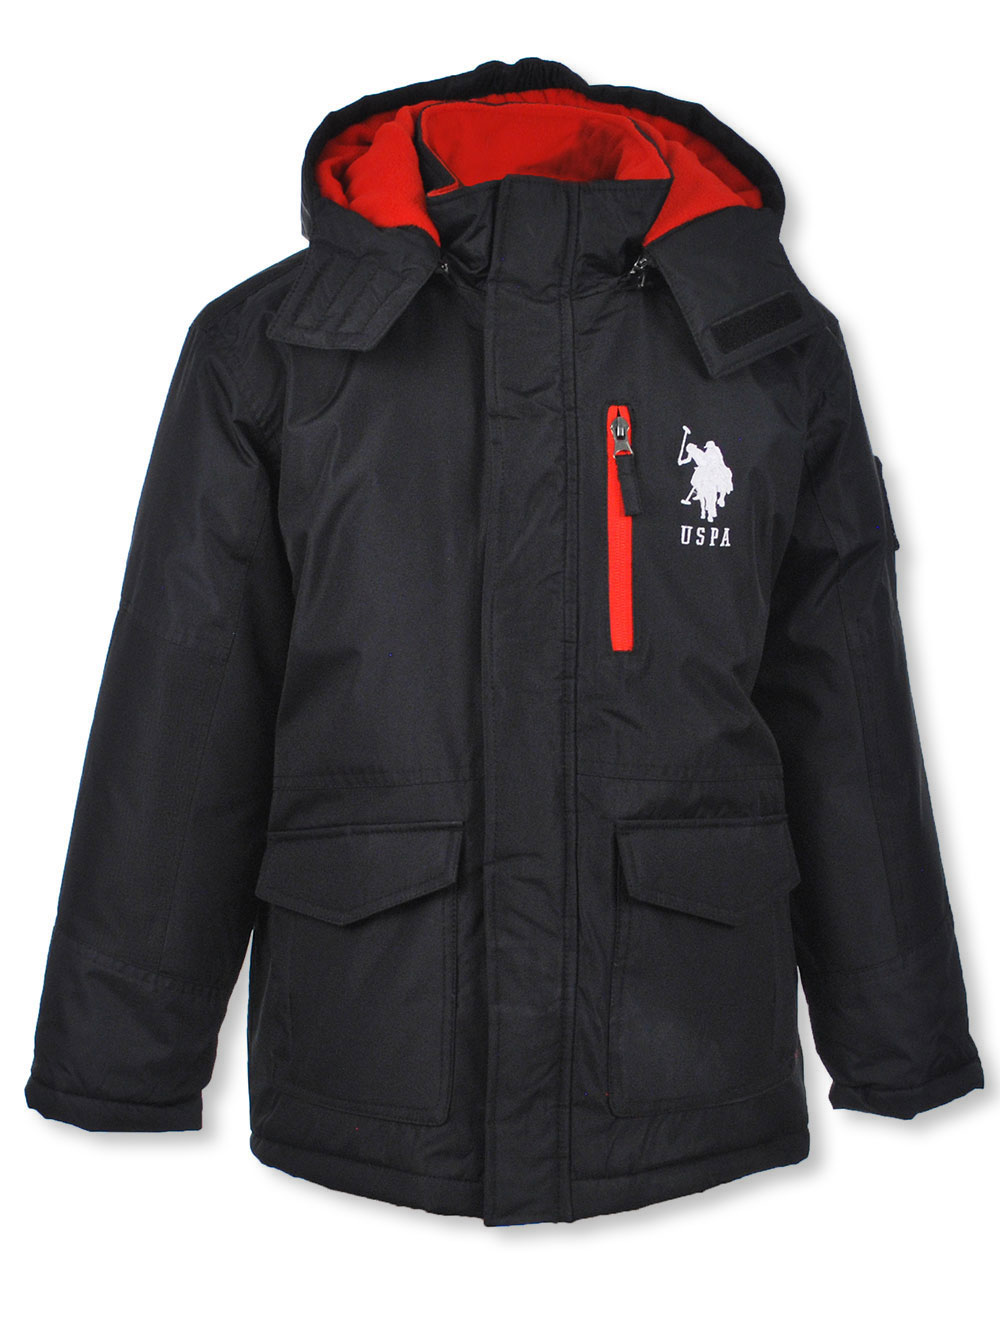 Size 4t Jackets Coats for Boys